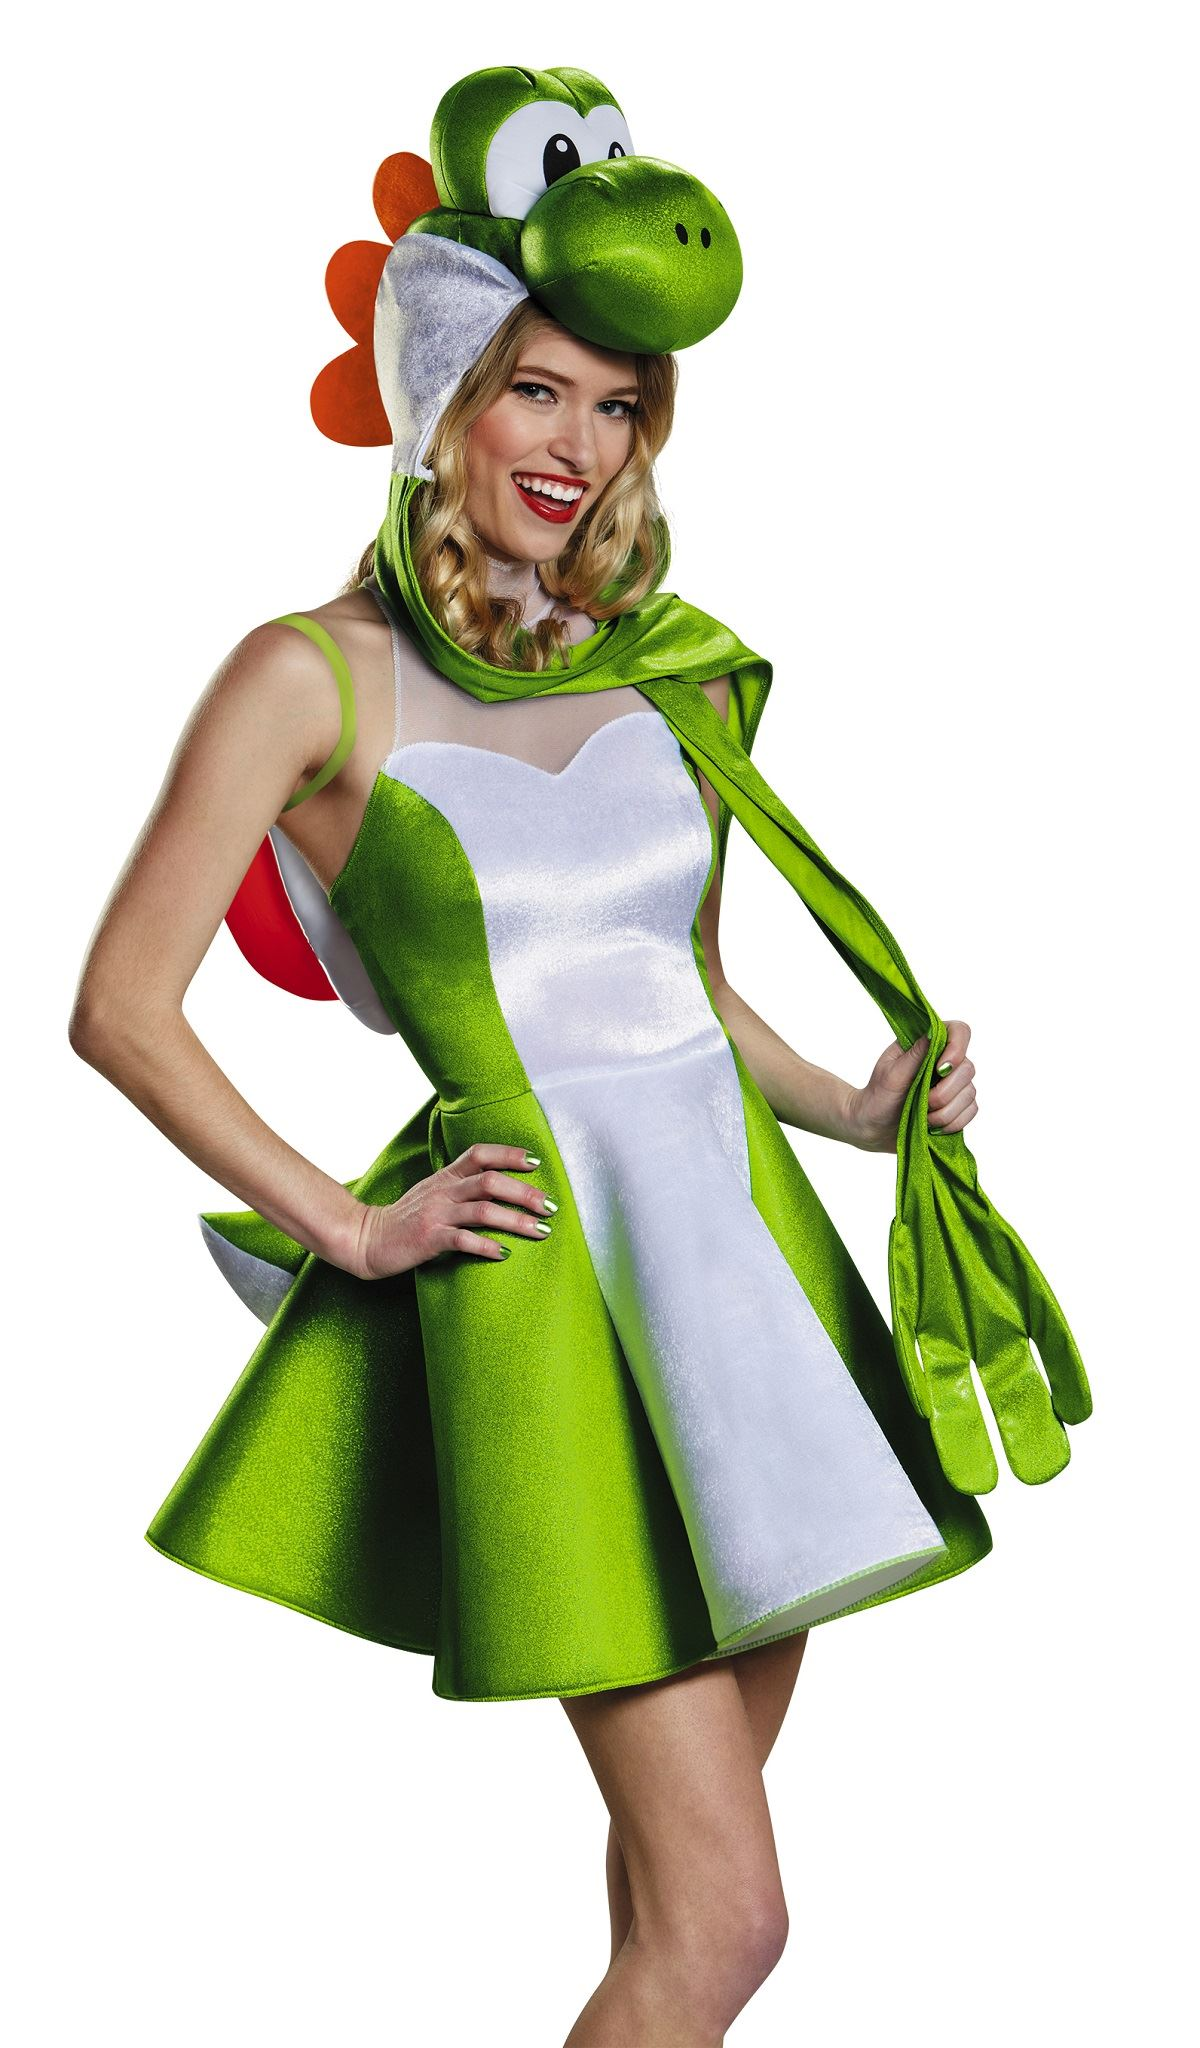 ... Adult Yoshi Mario Tween Girls Costume  sc 1 st  The Costume Land & Adult Yoshi Mario Tween Girls Costume | $52.19 | The Costume Land